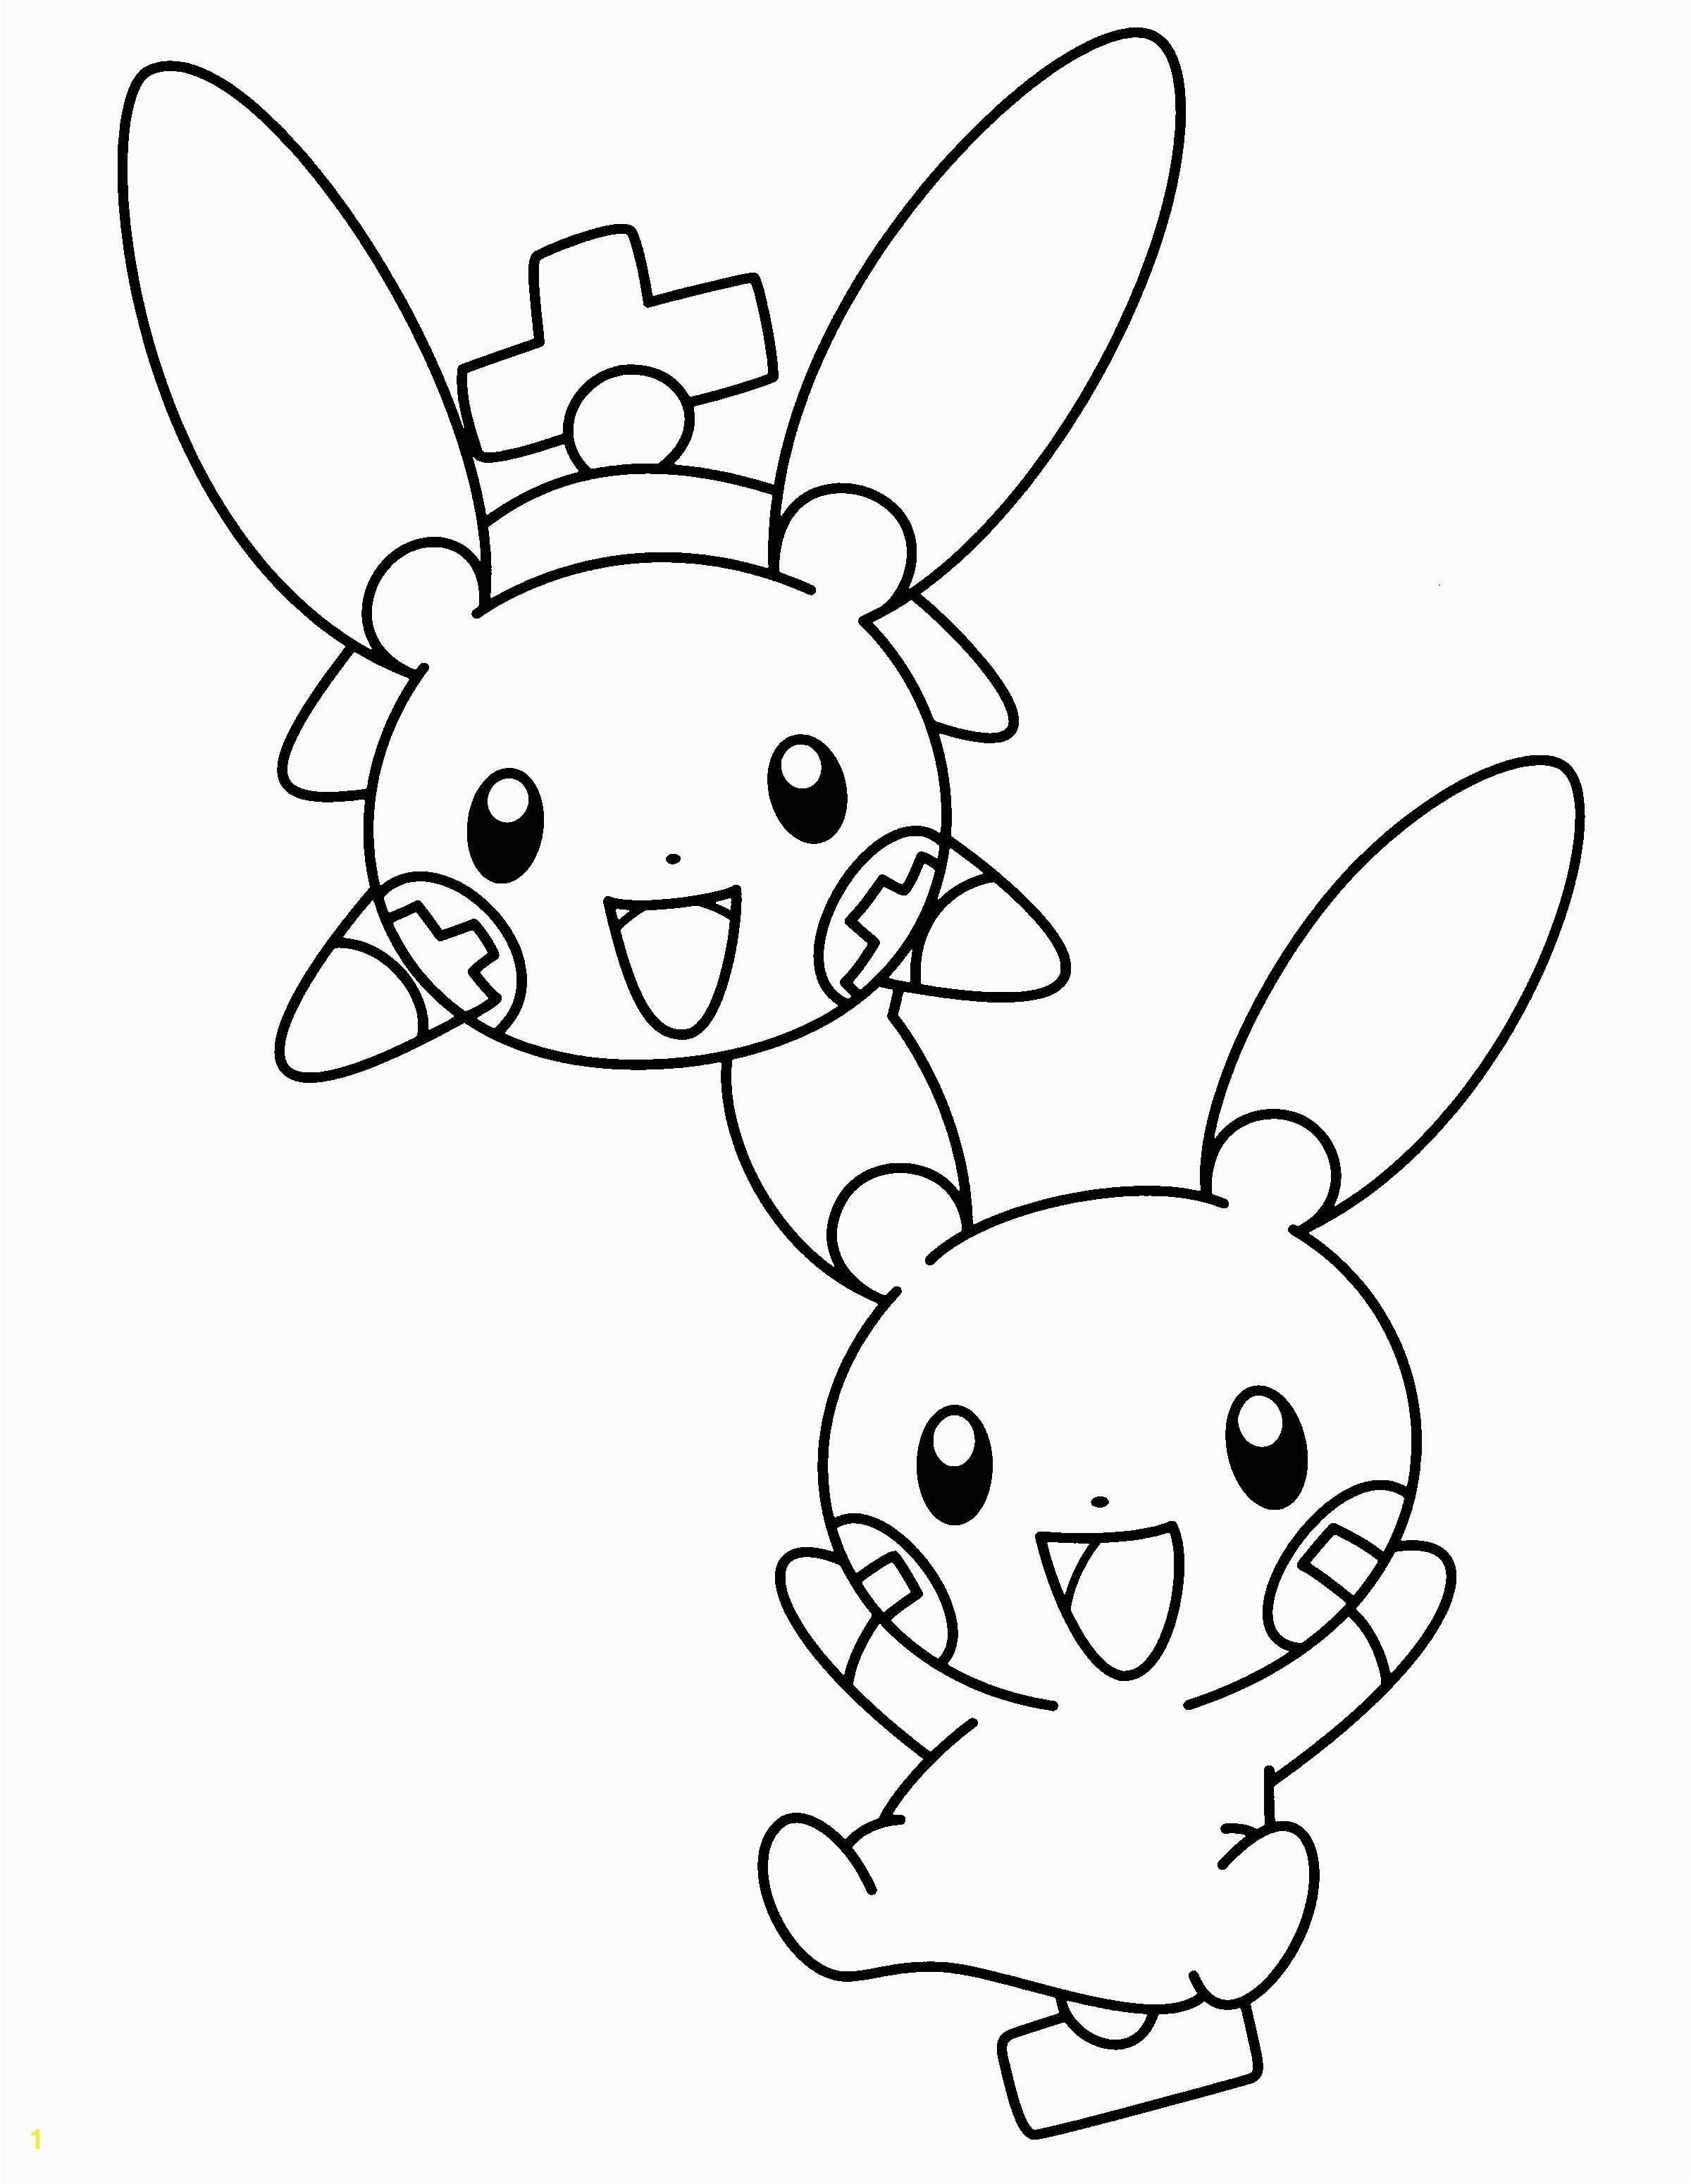 Pokemon Coloring Page Printable Inspirational Reward Roselia Coloring Pages Portfolio Pokemon Black and